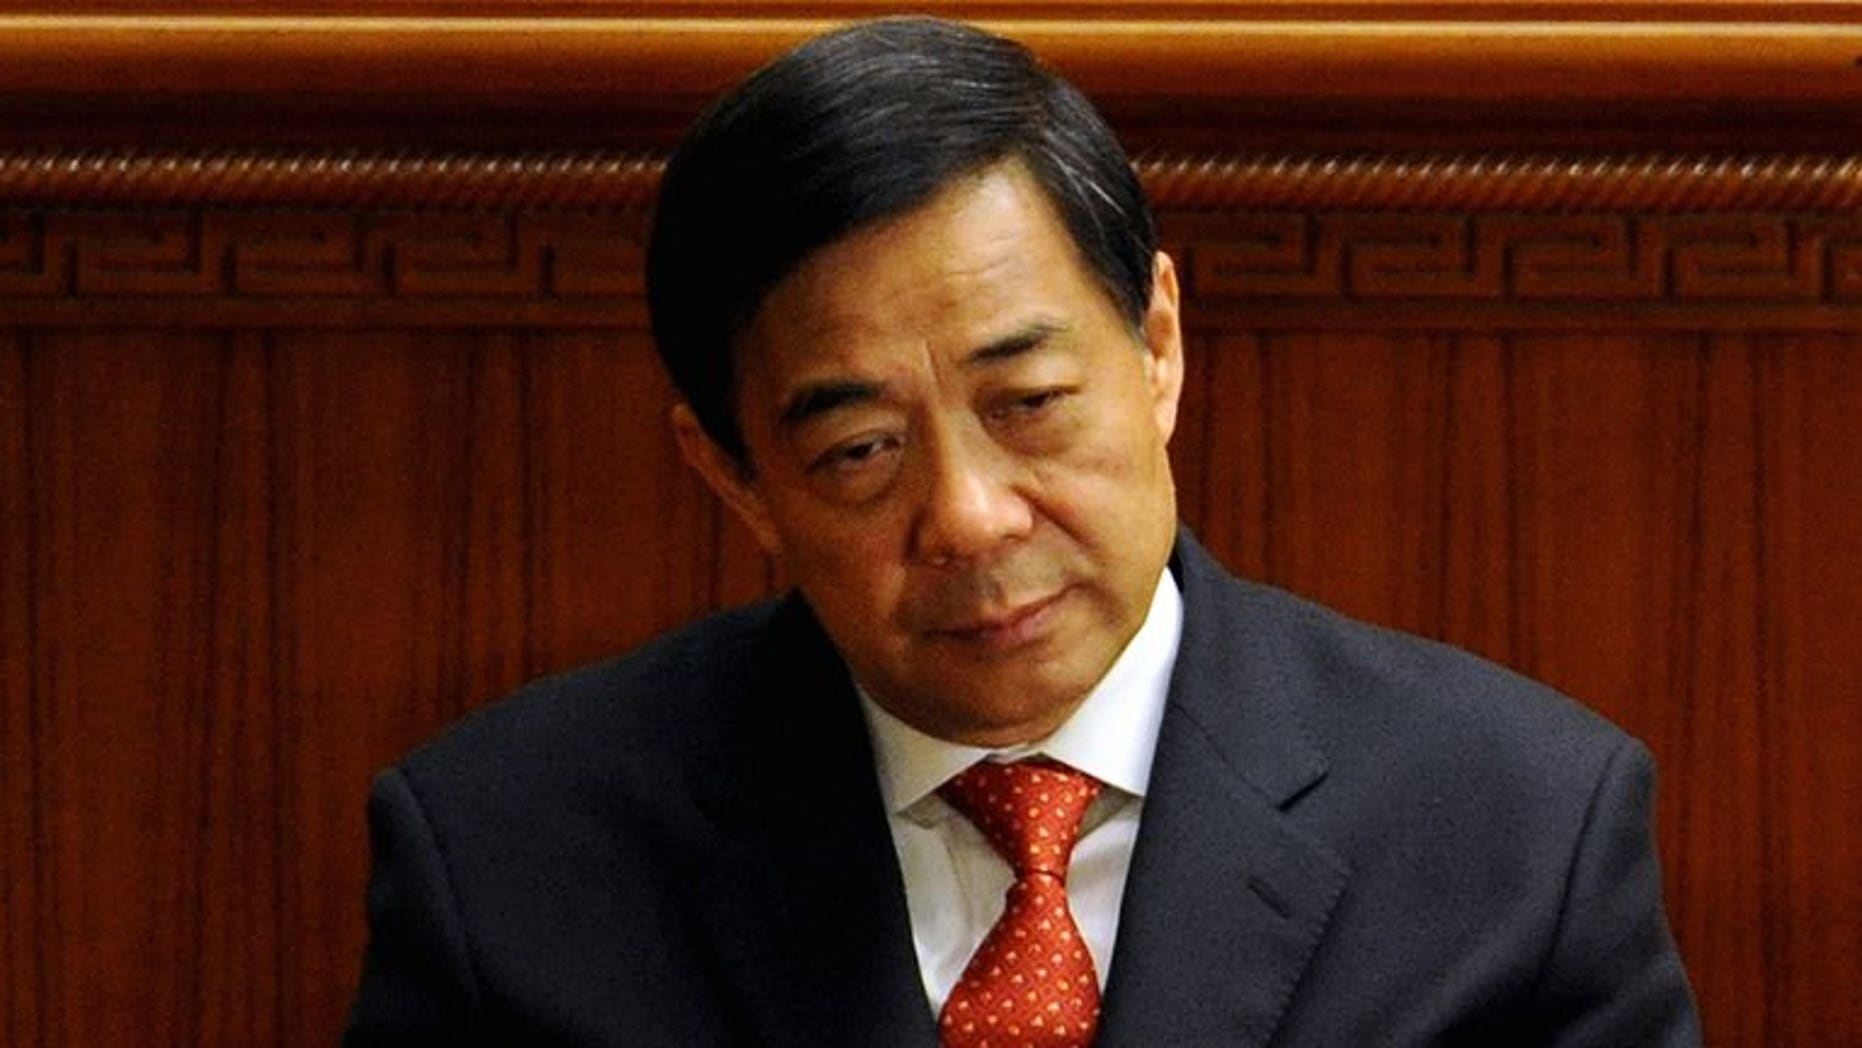 This photo taken on March 14, 2012, shows Chongqing Party Secretary Bo Xilai in Beijing. The trial of Bo Xilai -- set to be China's highest-profile political prosecution in decades -- will be held in August, a source with direct knowledge of the case told AFP on Wednesday.